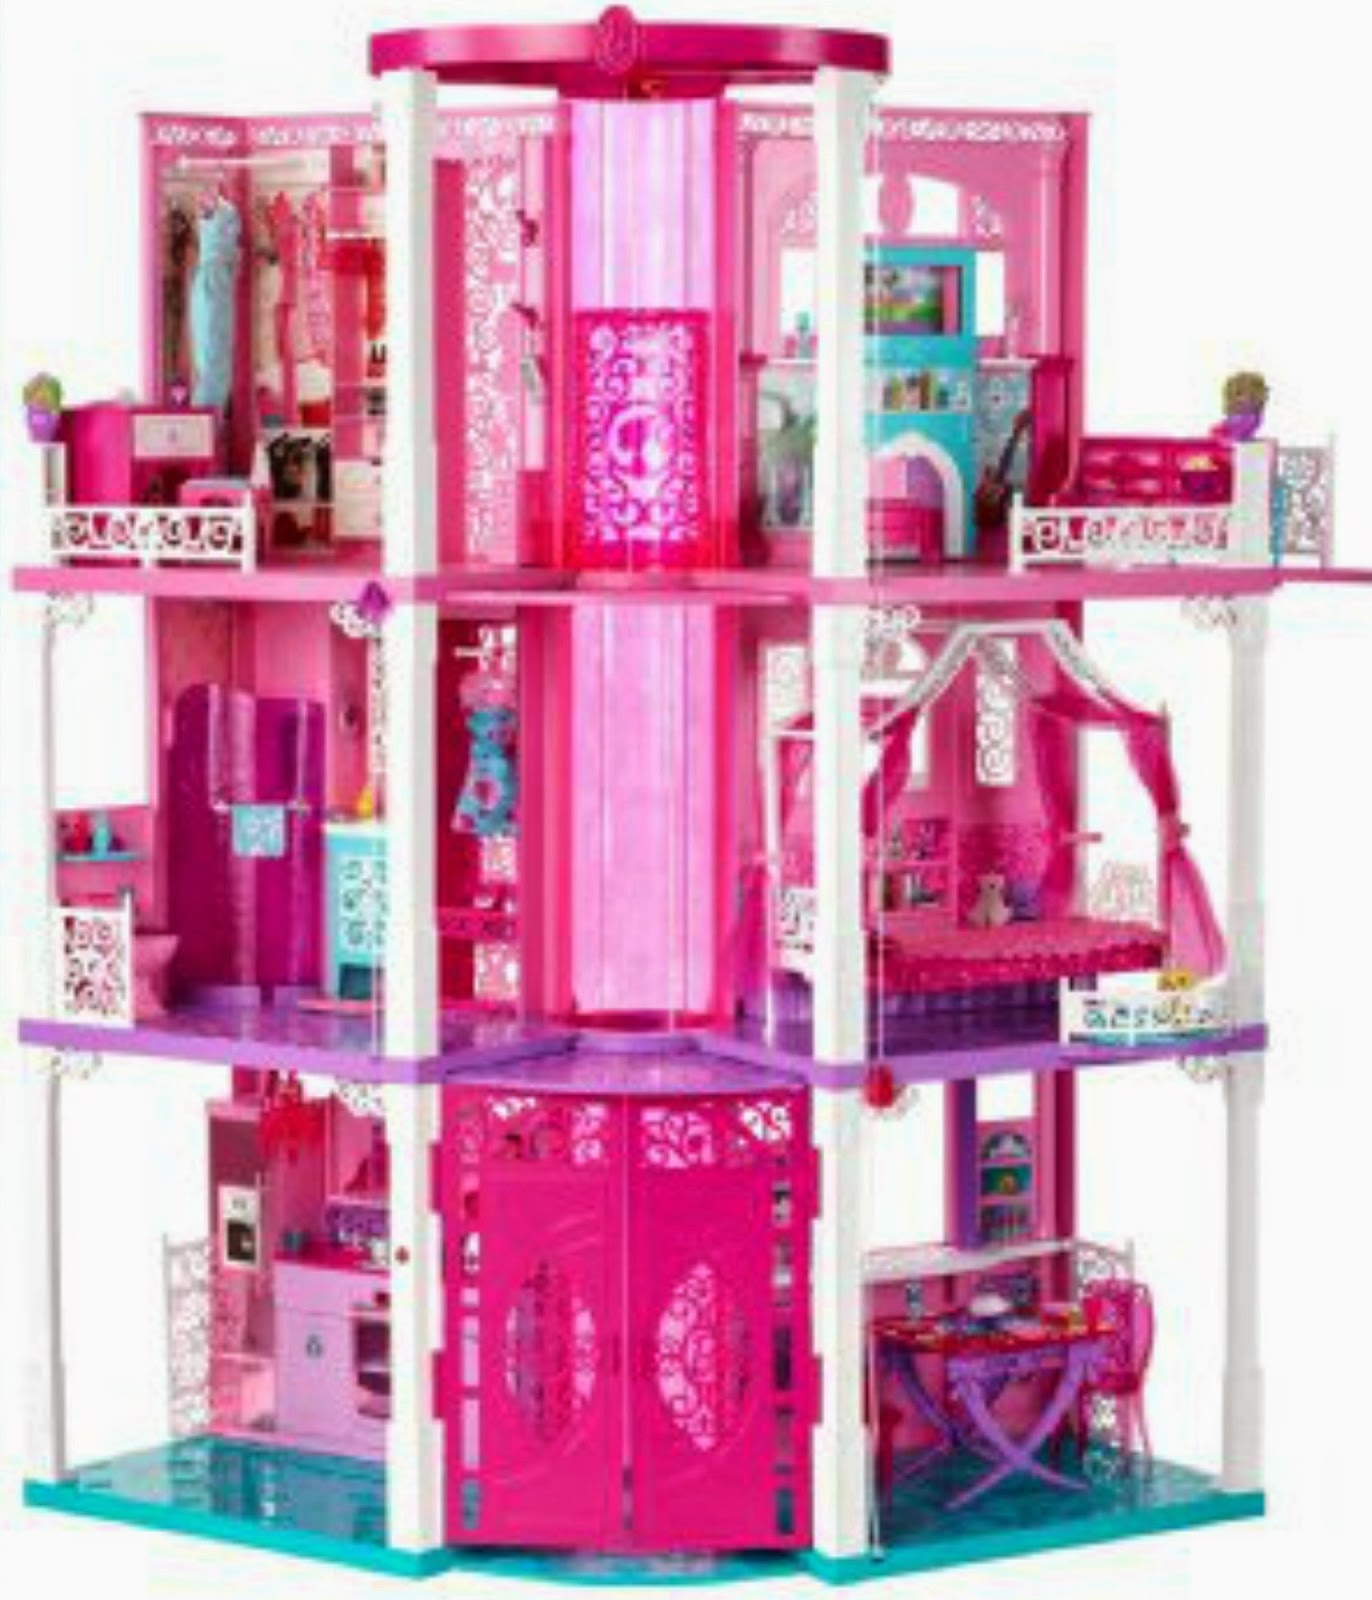 Barbie Dreamhouse Life: Barbie Dream House Life: Doll House Review  #BA1145 1372x1600 Banheiro Da Barbie Mattel